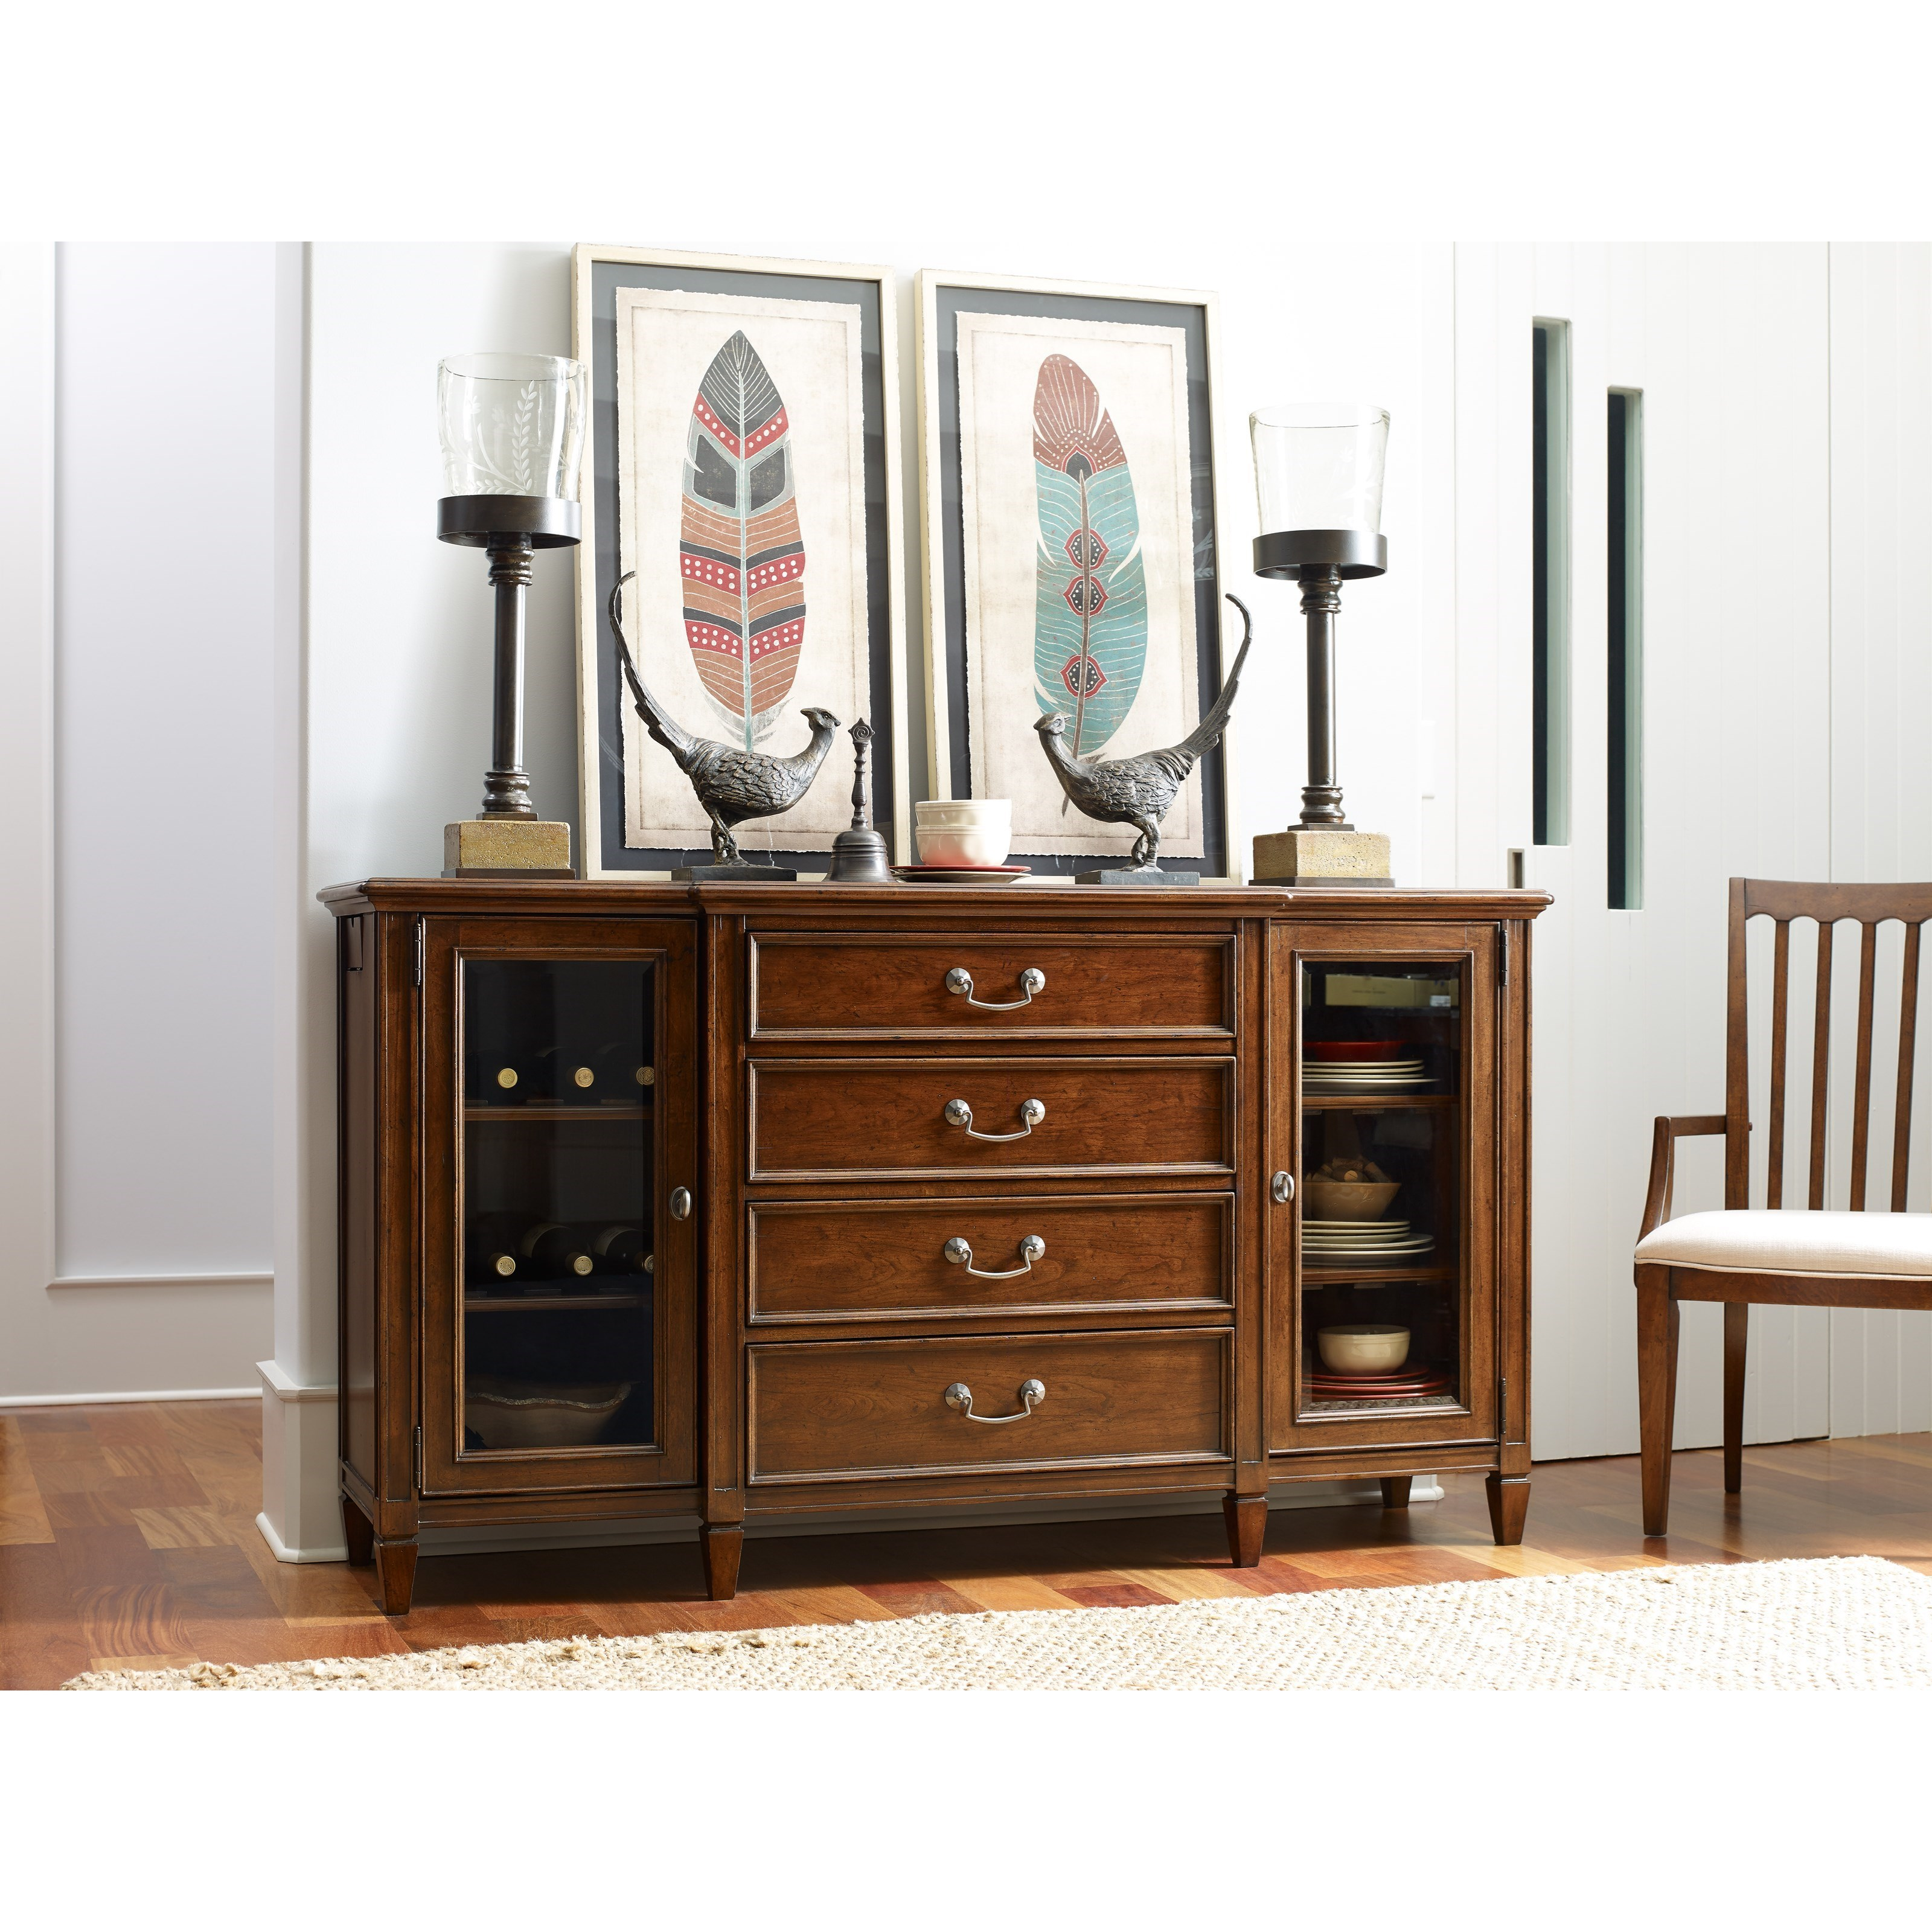 Rachael Ray Home By Legacy Classic Upstate Sideboard With Usb Outlet Fashion Furniture